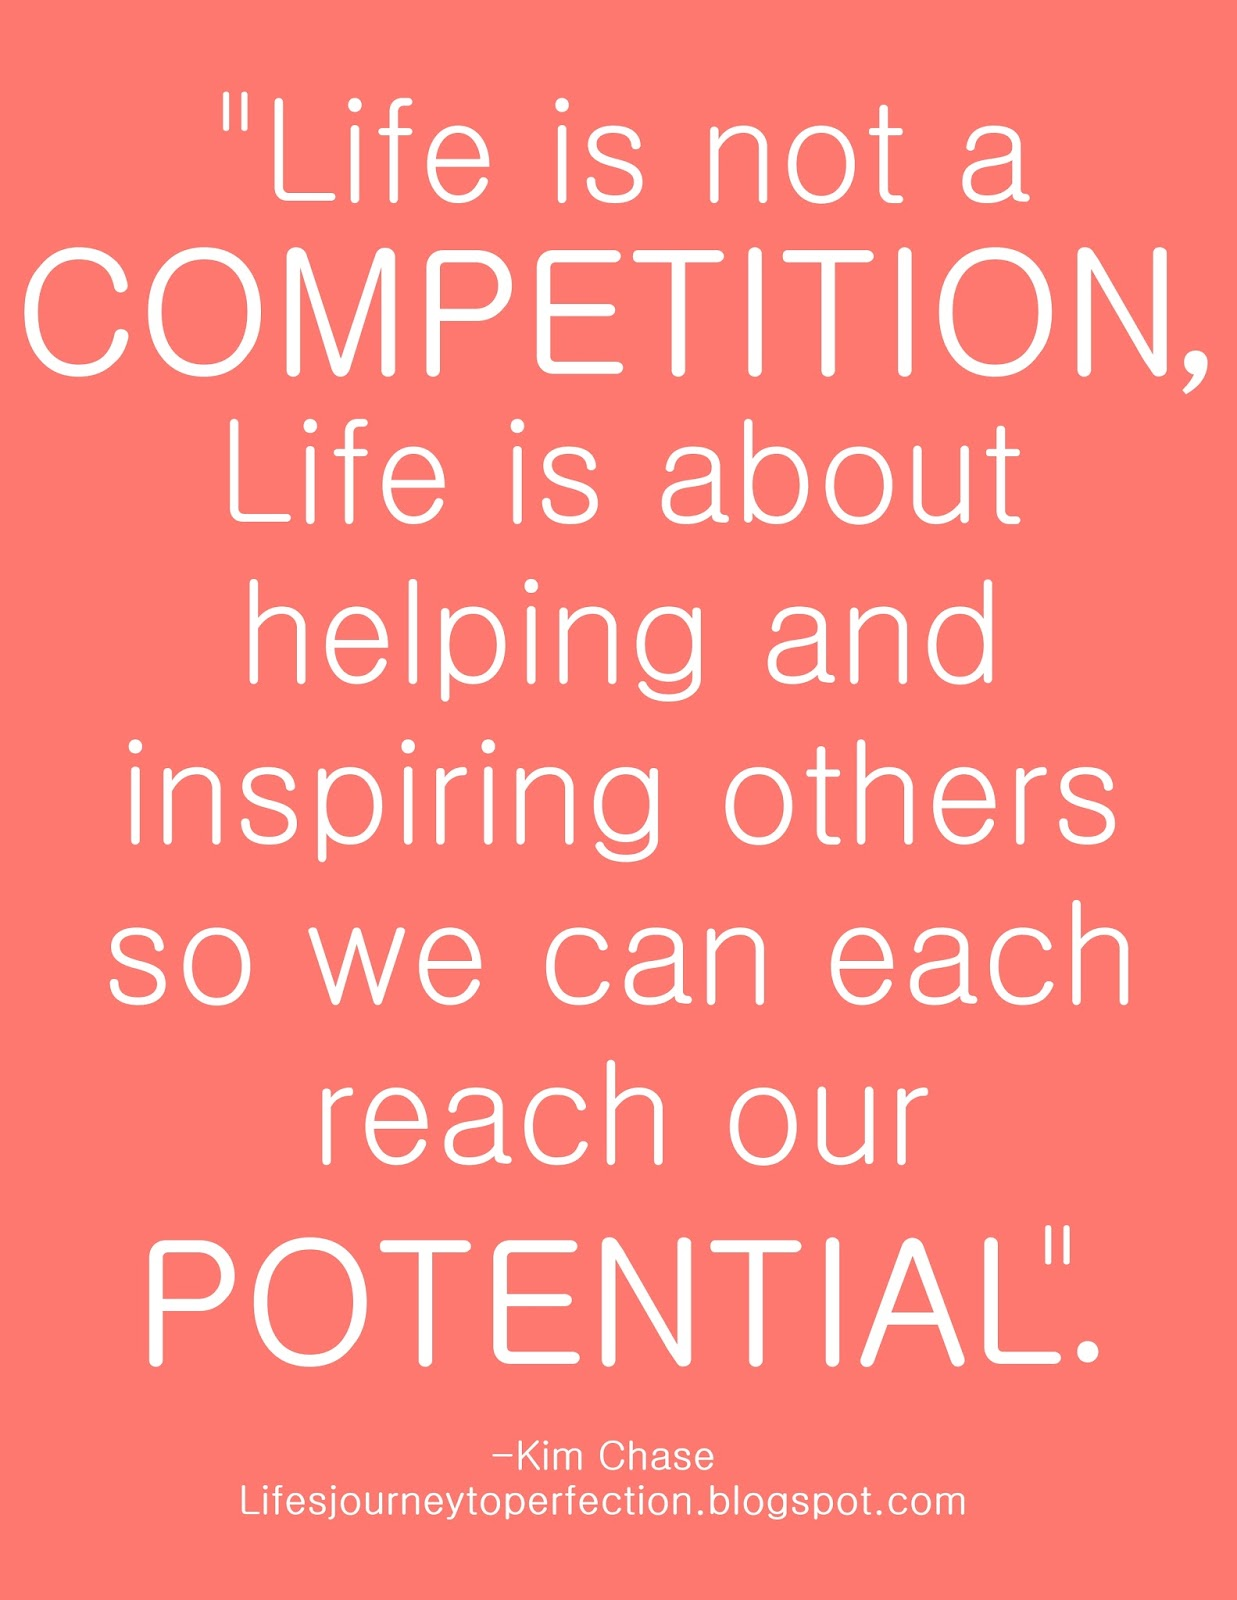 Life is not a competition. Life is about helping and inspiring others so we can each reach our potential. Kim Chase